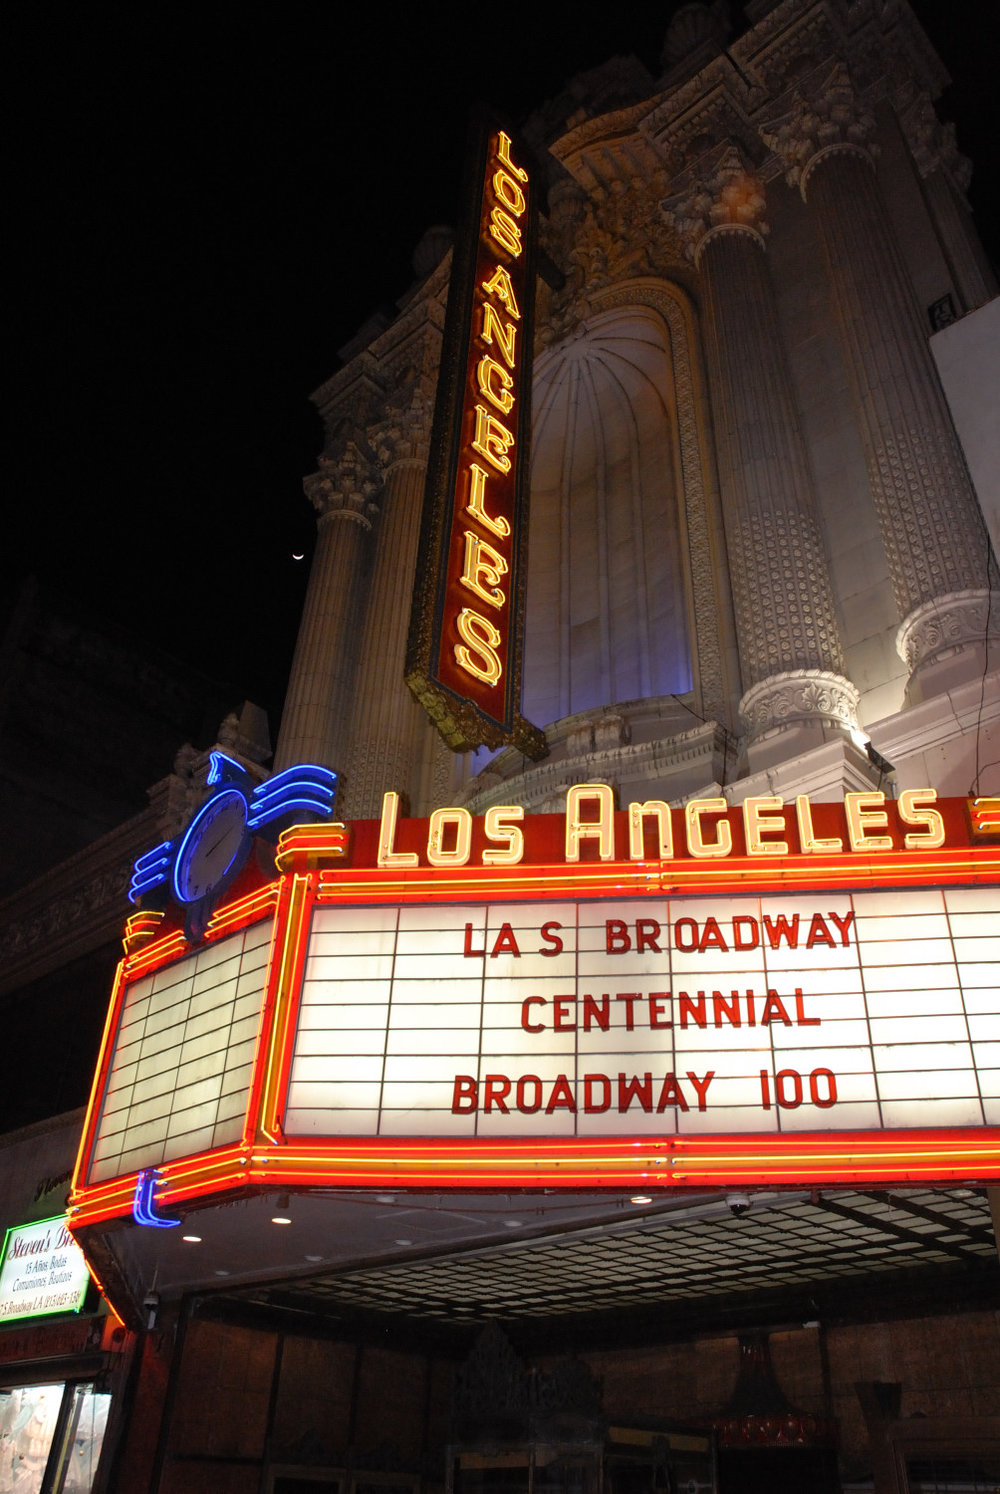 bringing-back-broadway-dtla-theatrefication-broadway-100-bbb_6813947915_o.jpg